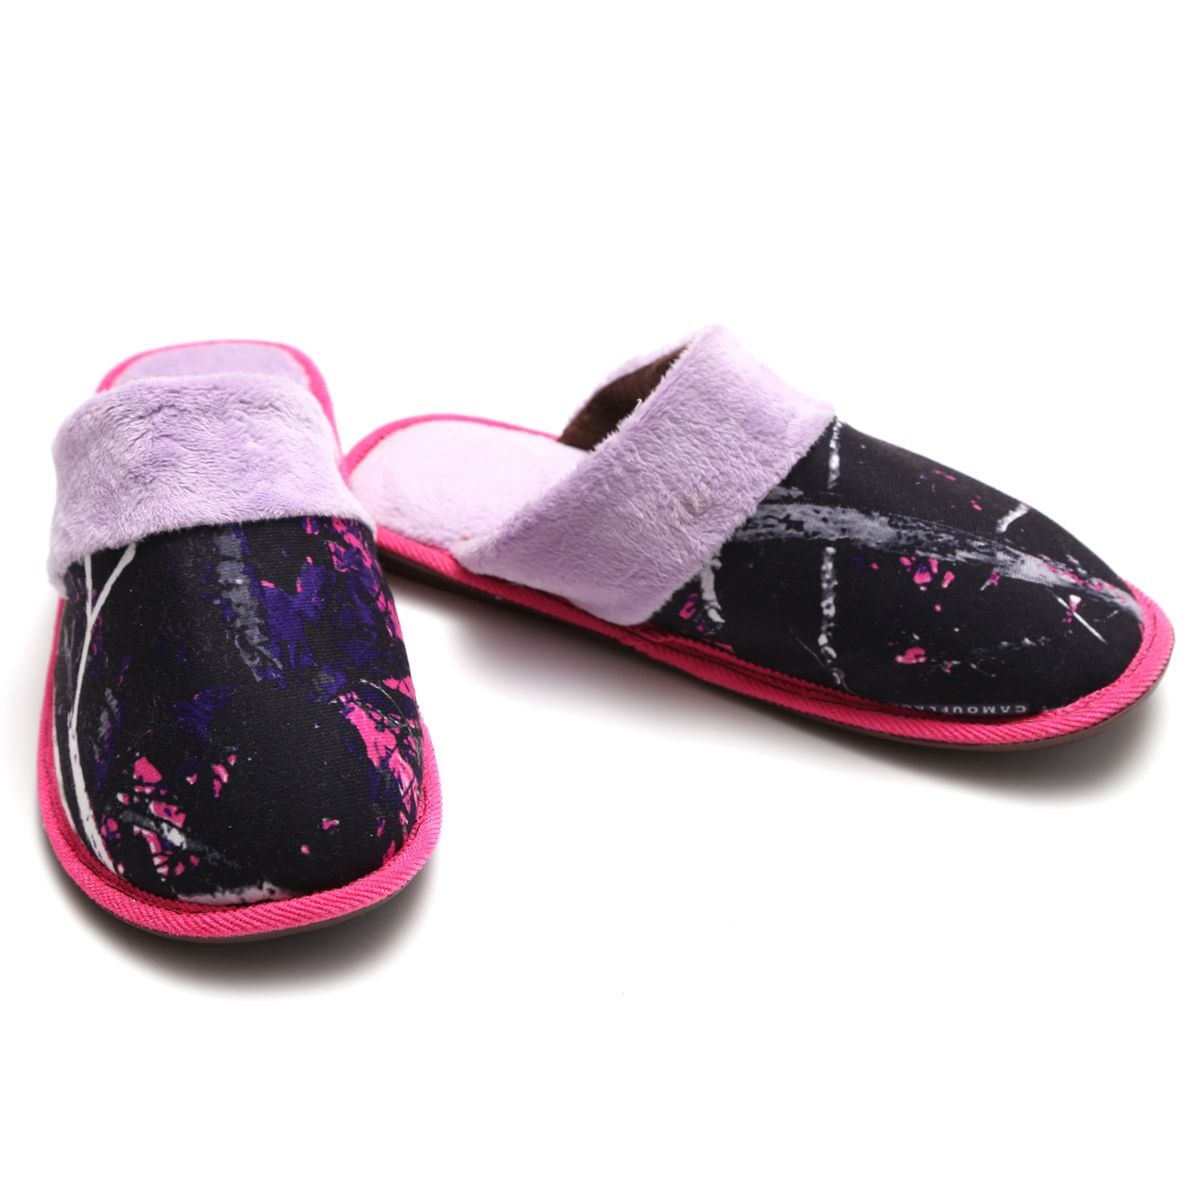 8d7251304f265 Muddy Girl Adult Slippers #MuddyGirl #Pink #Camo #Slippers ...